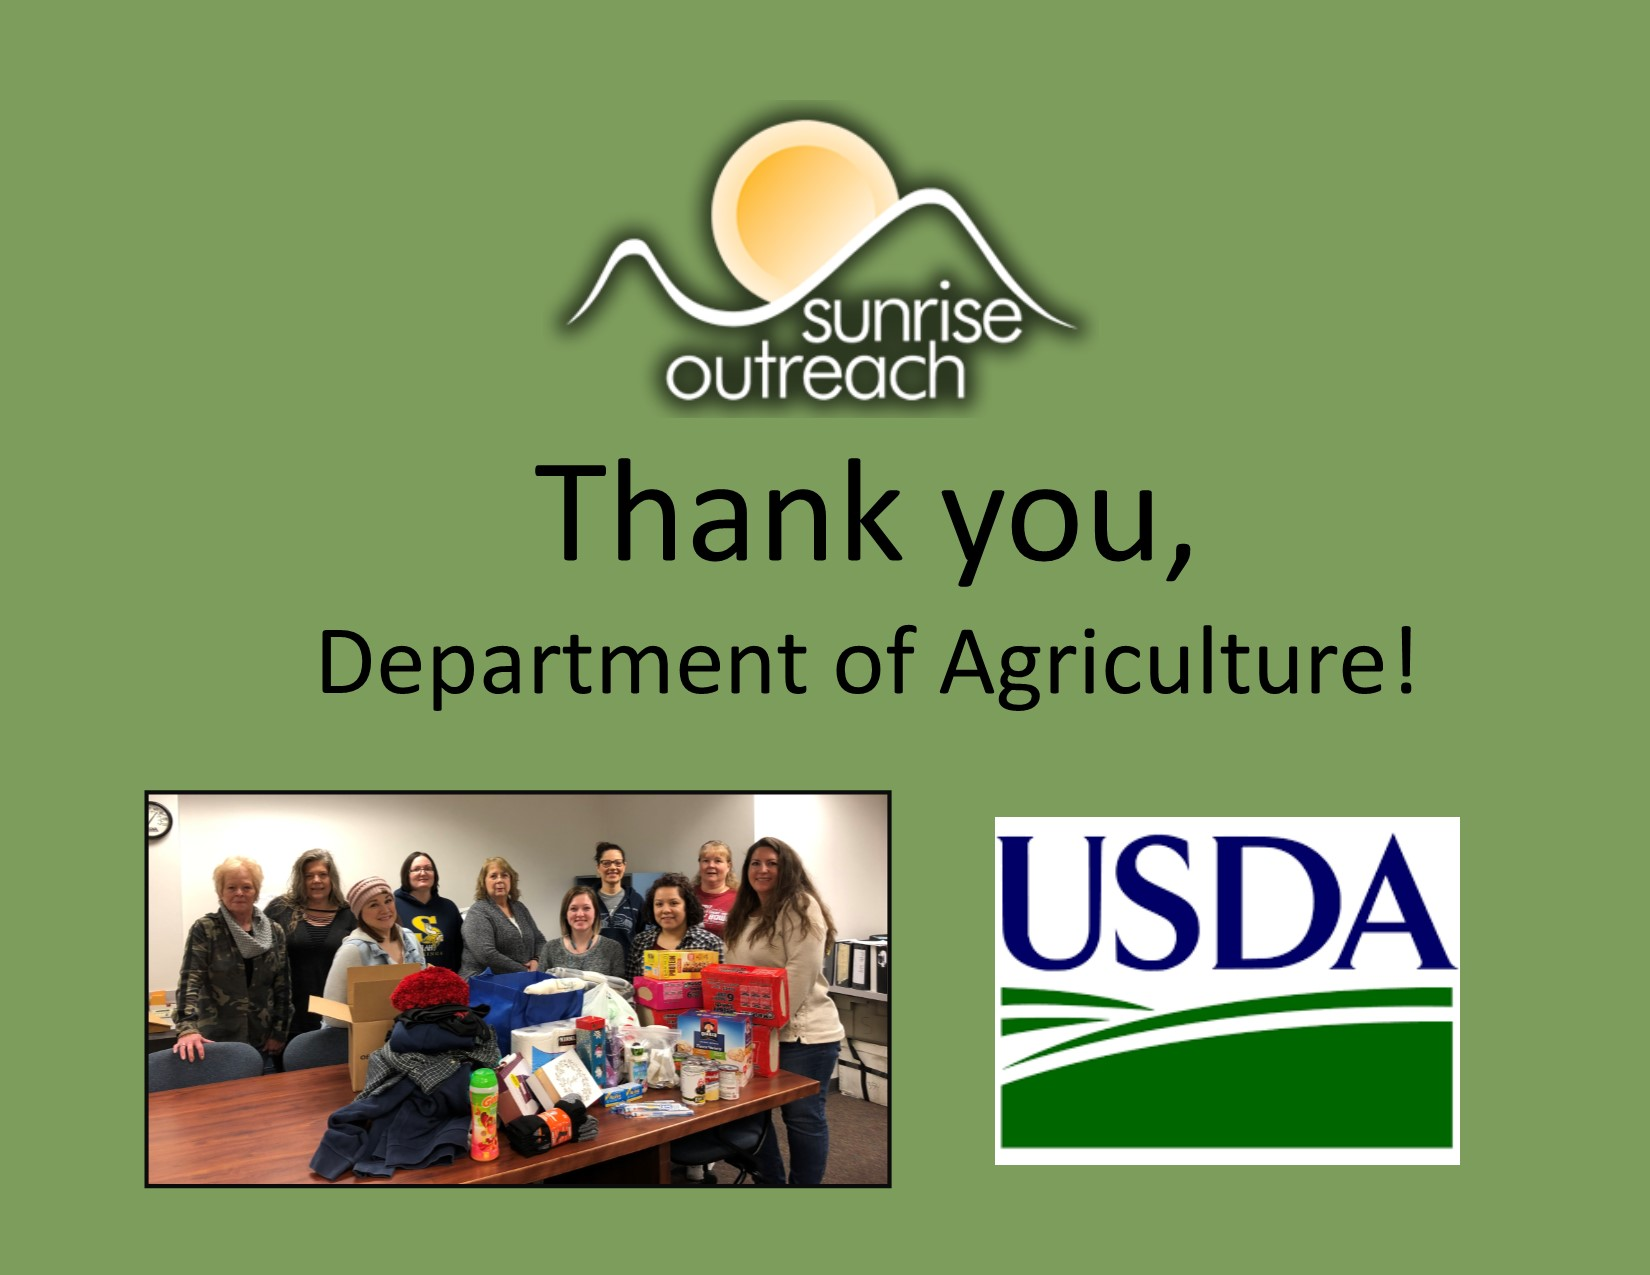 Thank you, Department of Agriculture!